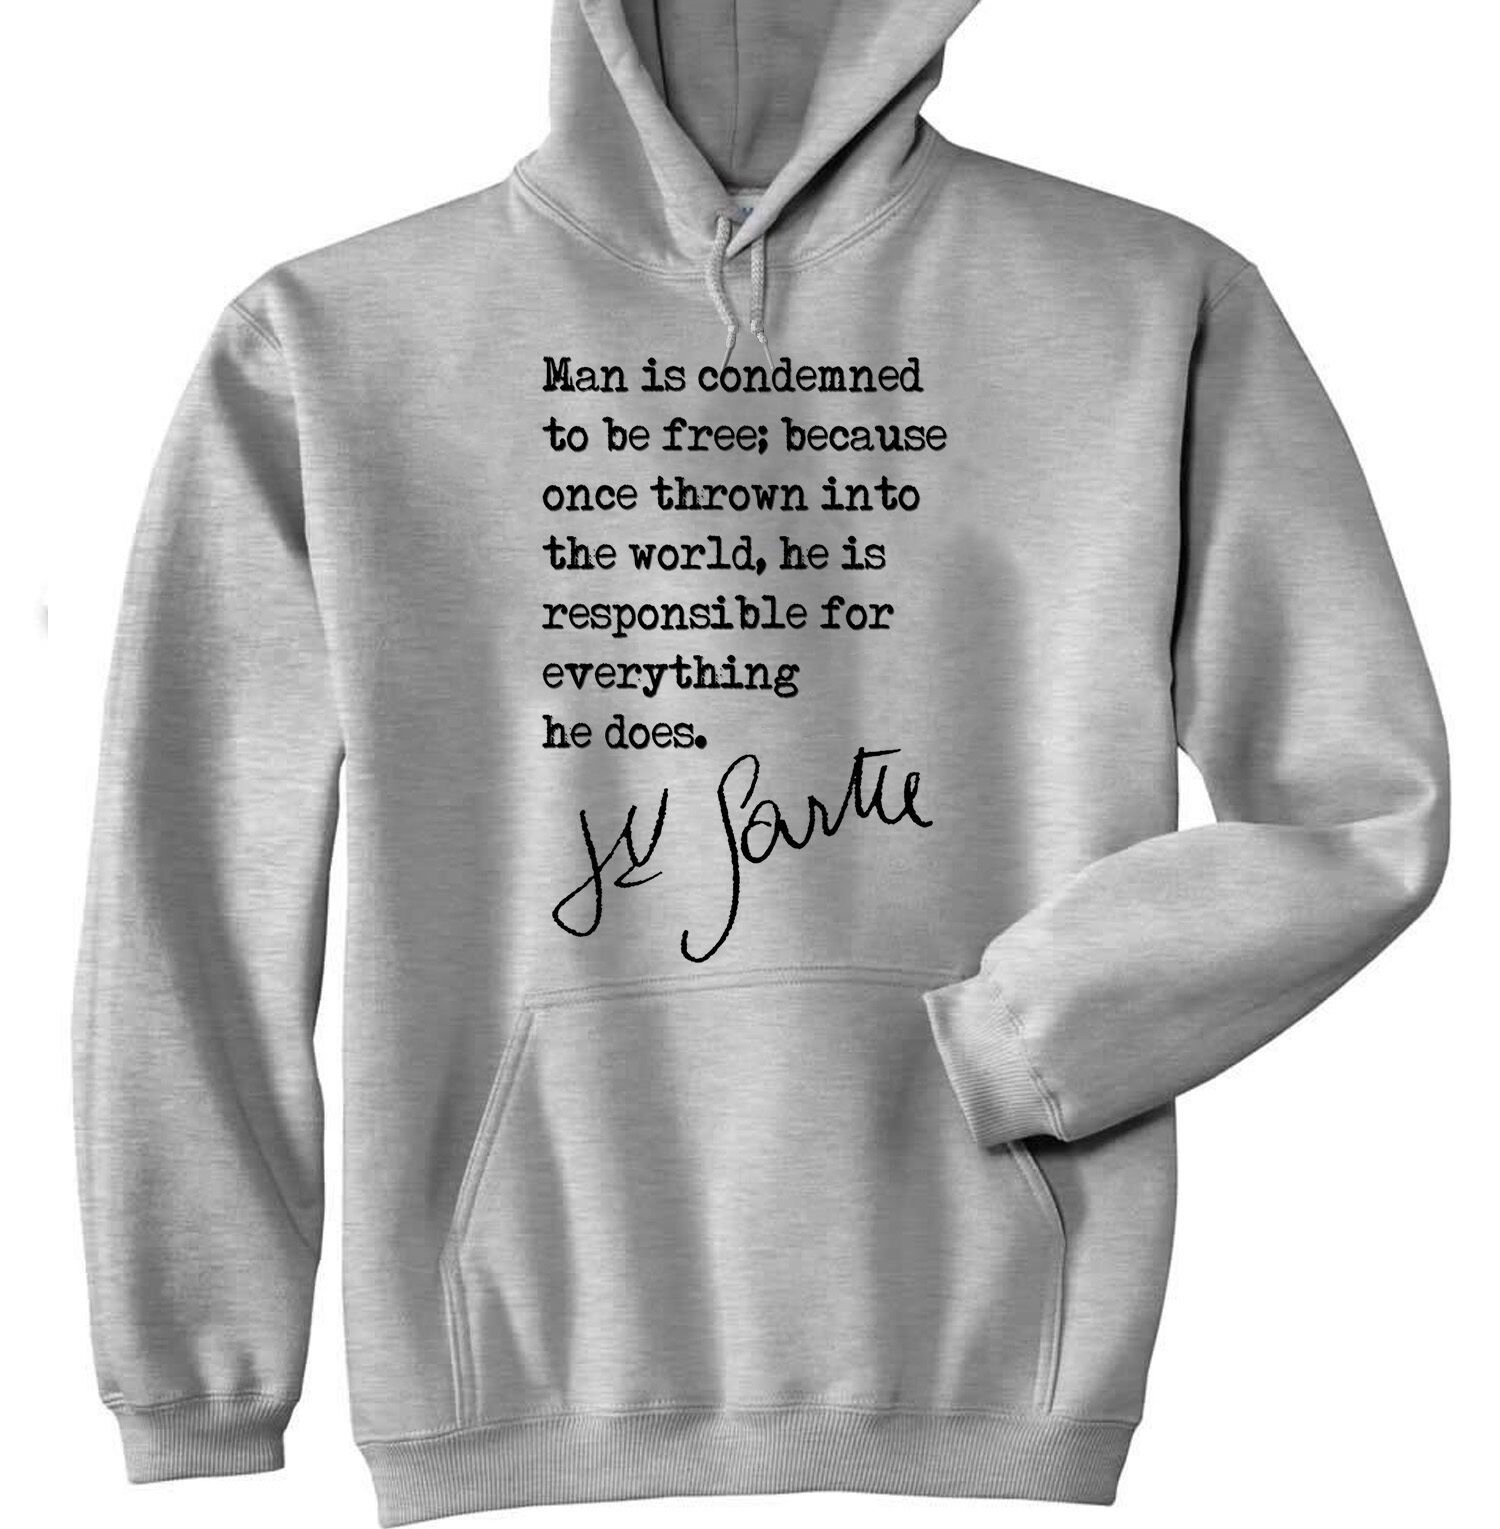 JEAN PAUL SARTRE QUOTE - NEW COTTON GREY HOODIE